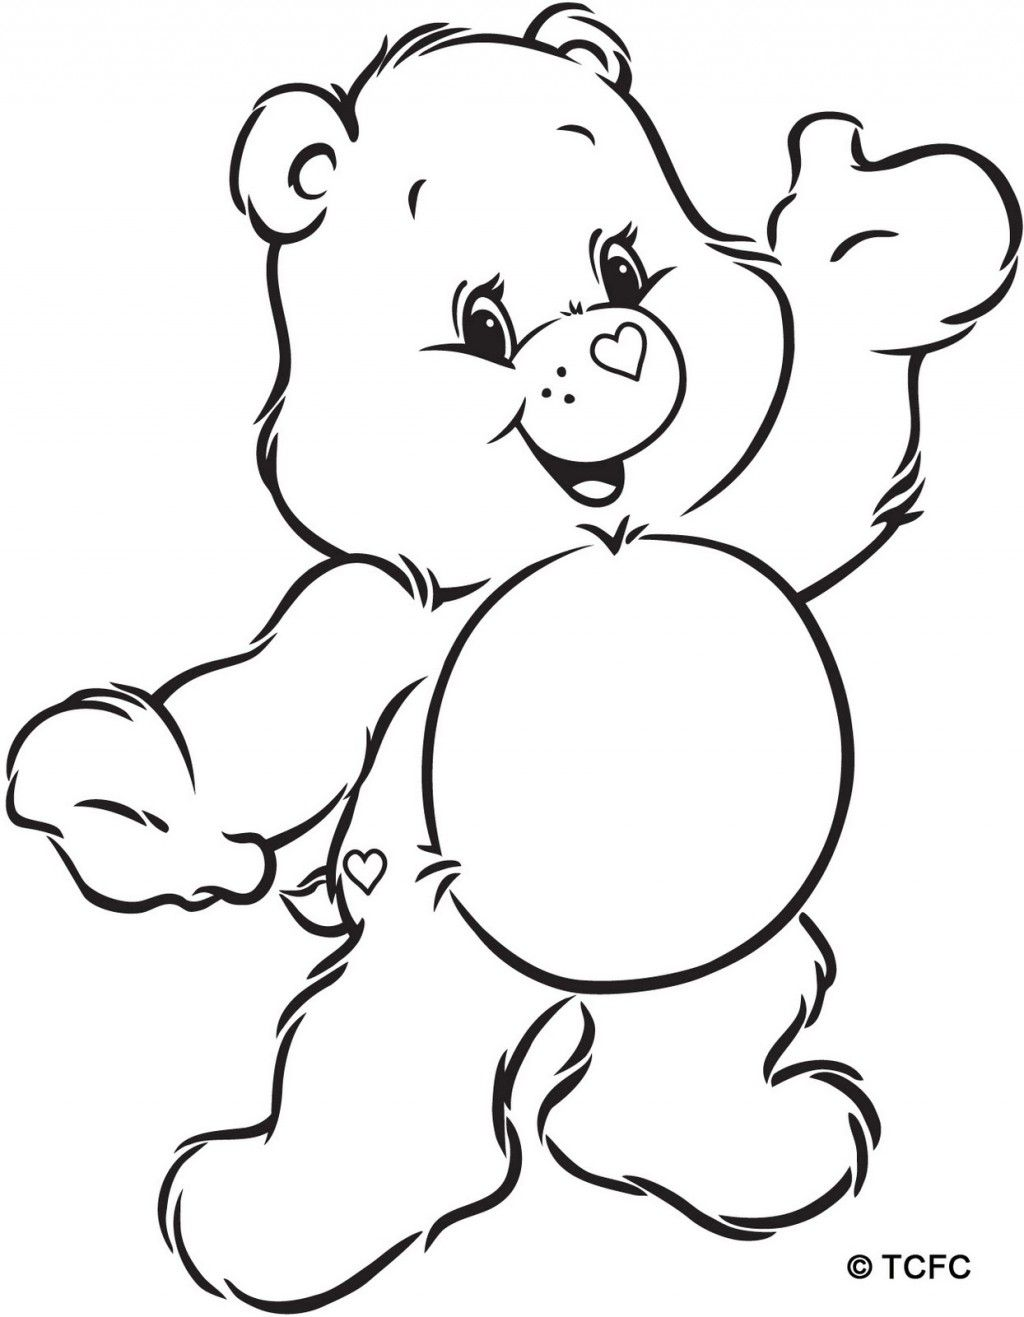 Coloring Pages Coloring Pages Design Your Own Care Bearcoloring Care Bear Free Printable Bear Coloring Pages Birthday Coloring Pages Halloween Coloring Pages